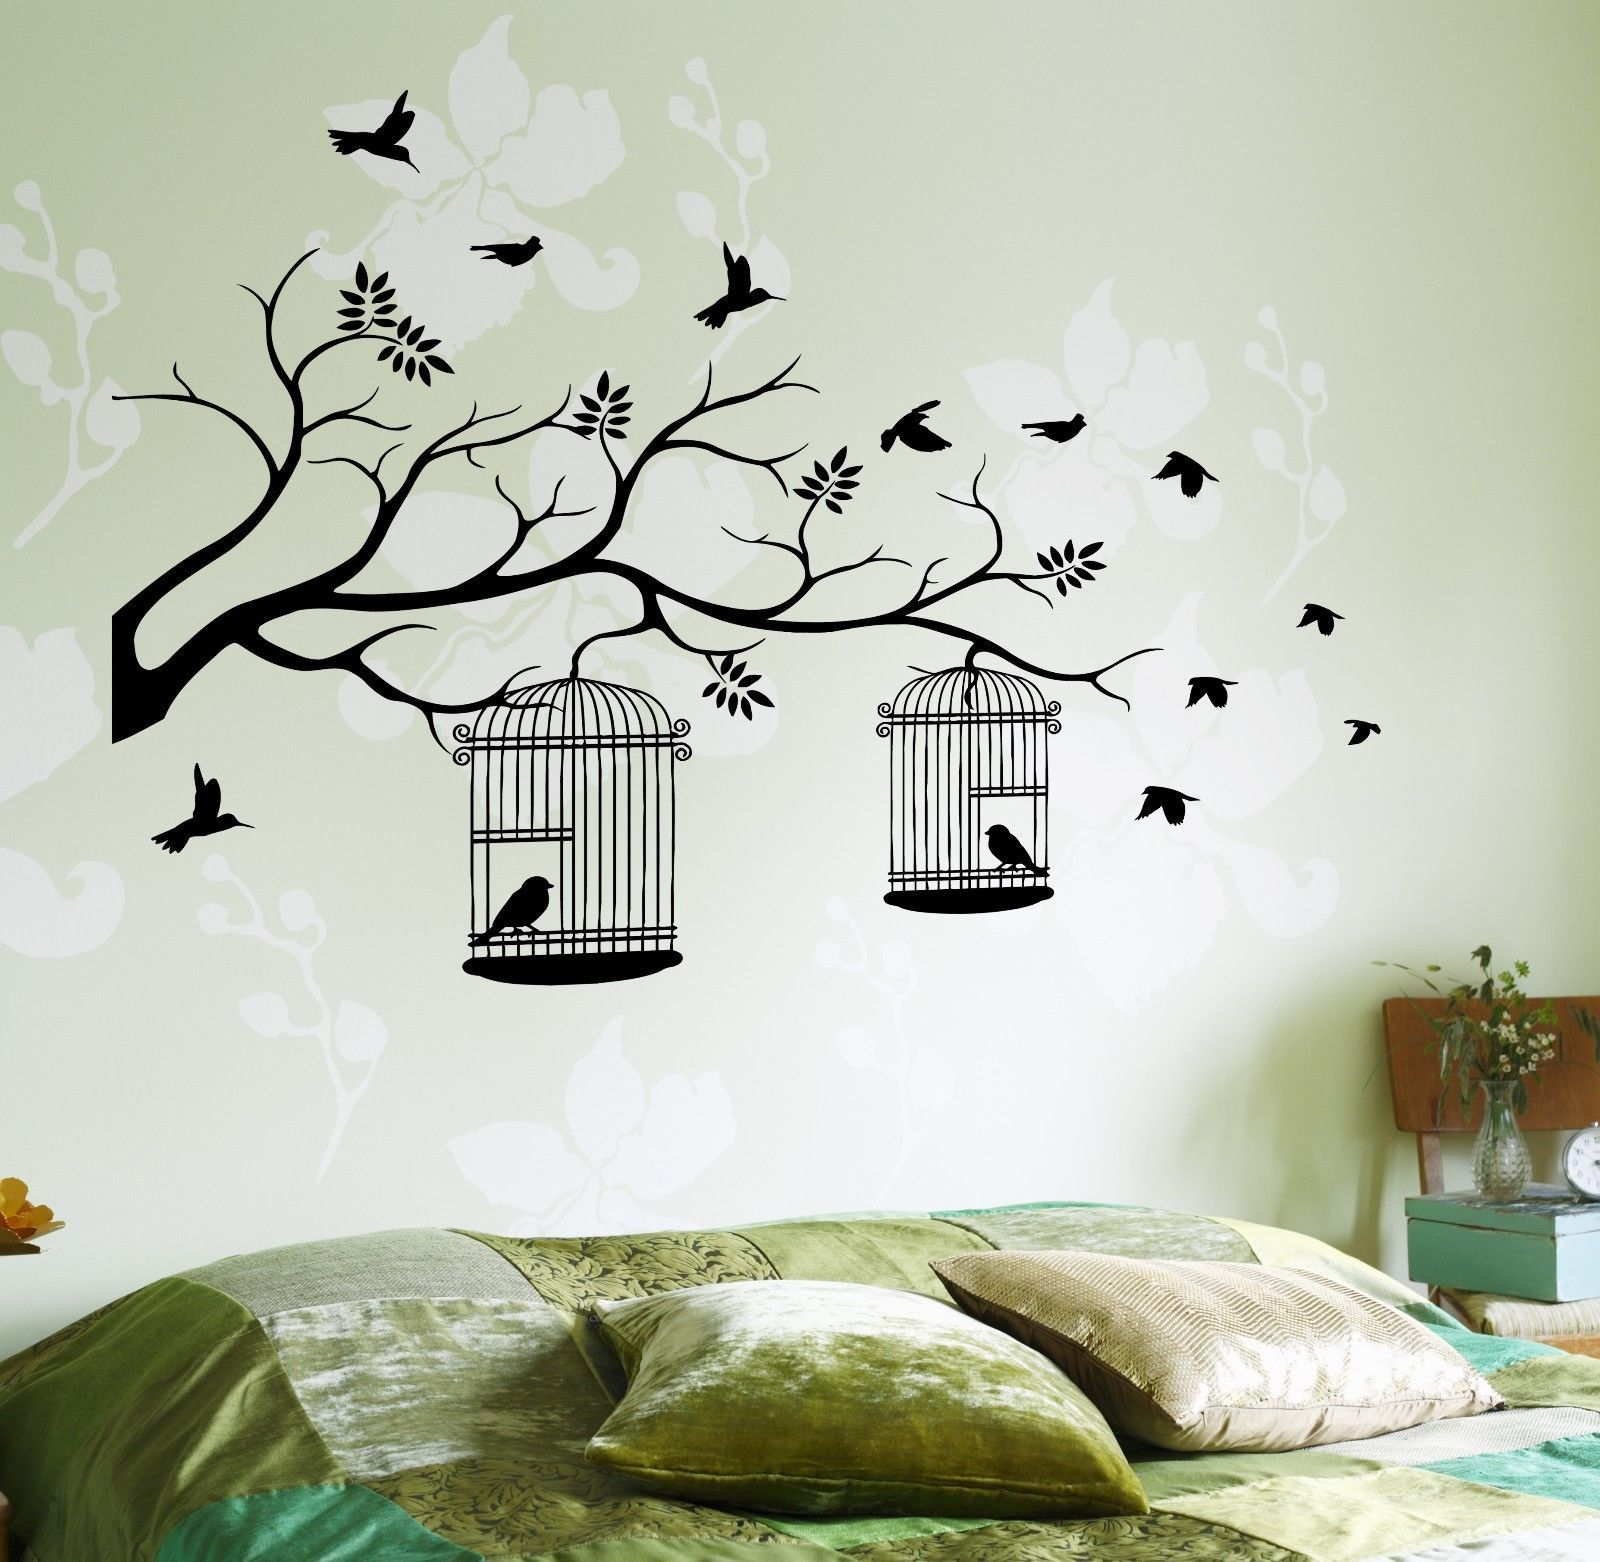 Details about wall decal birds cage tree branch nature vinyl sticker